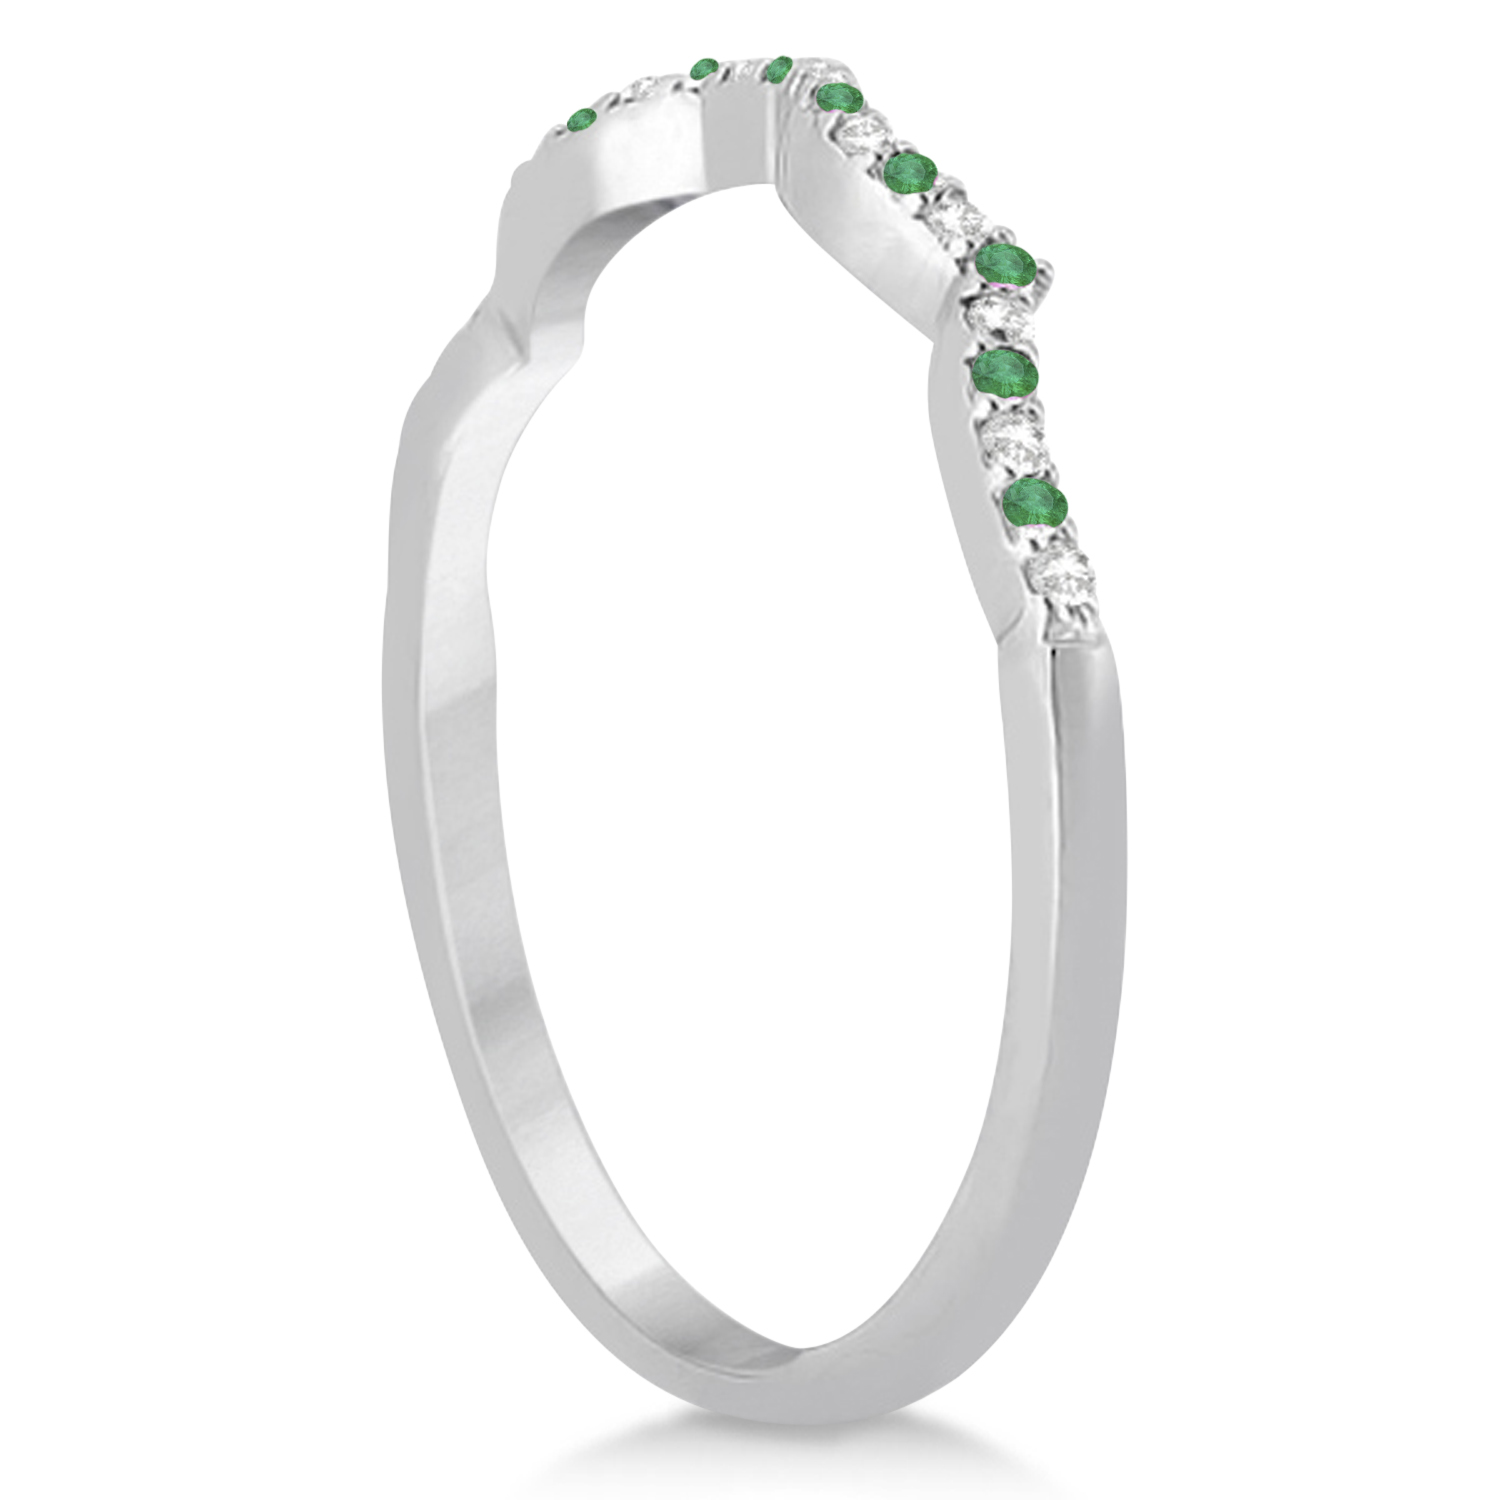 Diamond & Emerald Contour Wedding Band 14K White Gold 0.24ct